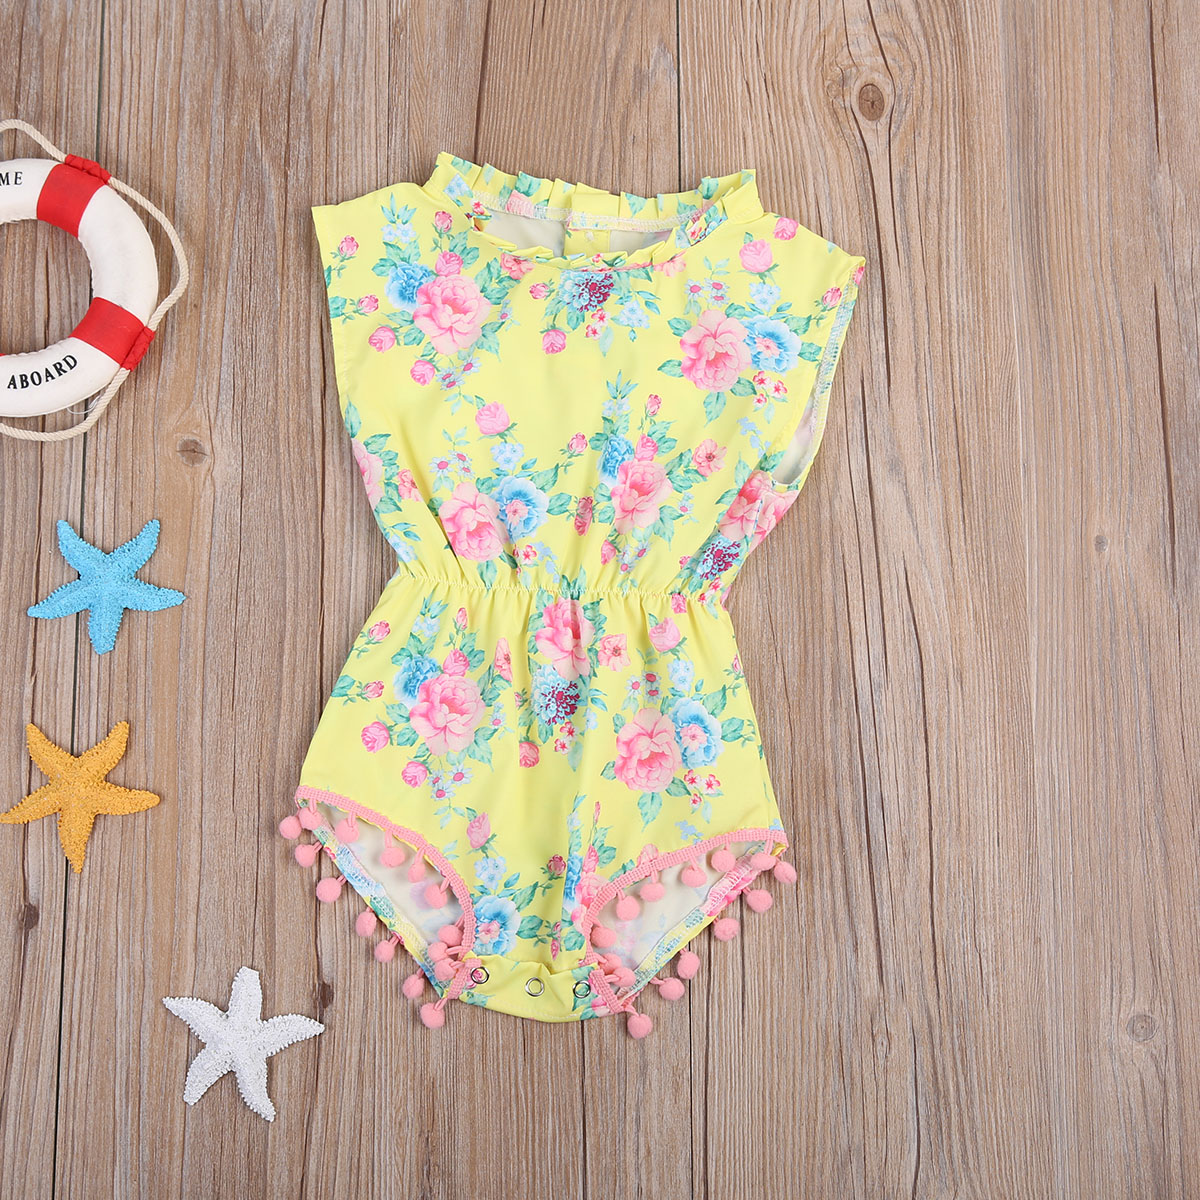 Adorable Sleeveless Kids Baby Girls Toddler Long Sleeve Floral Bodysuit Clothes Jumpsuit One-Pieces Outfits